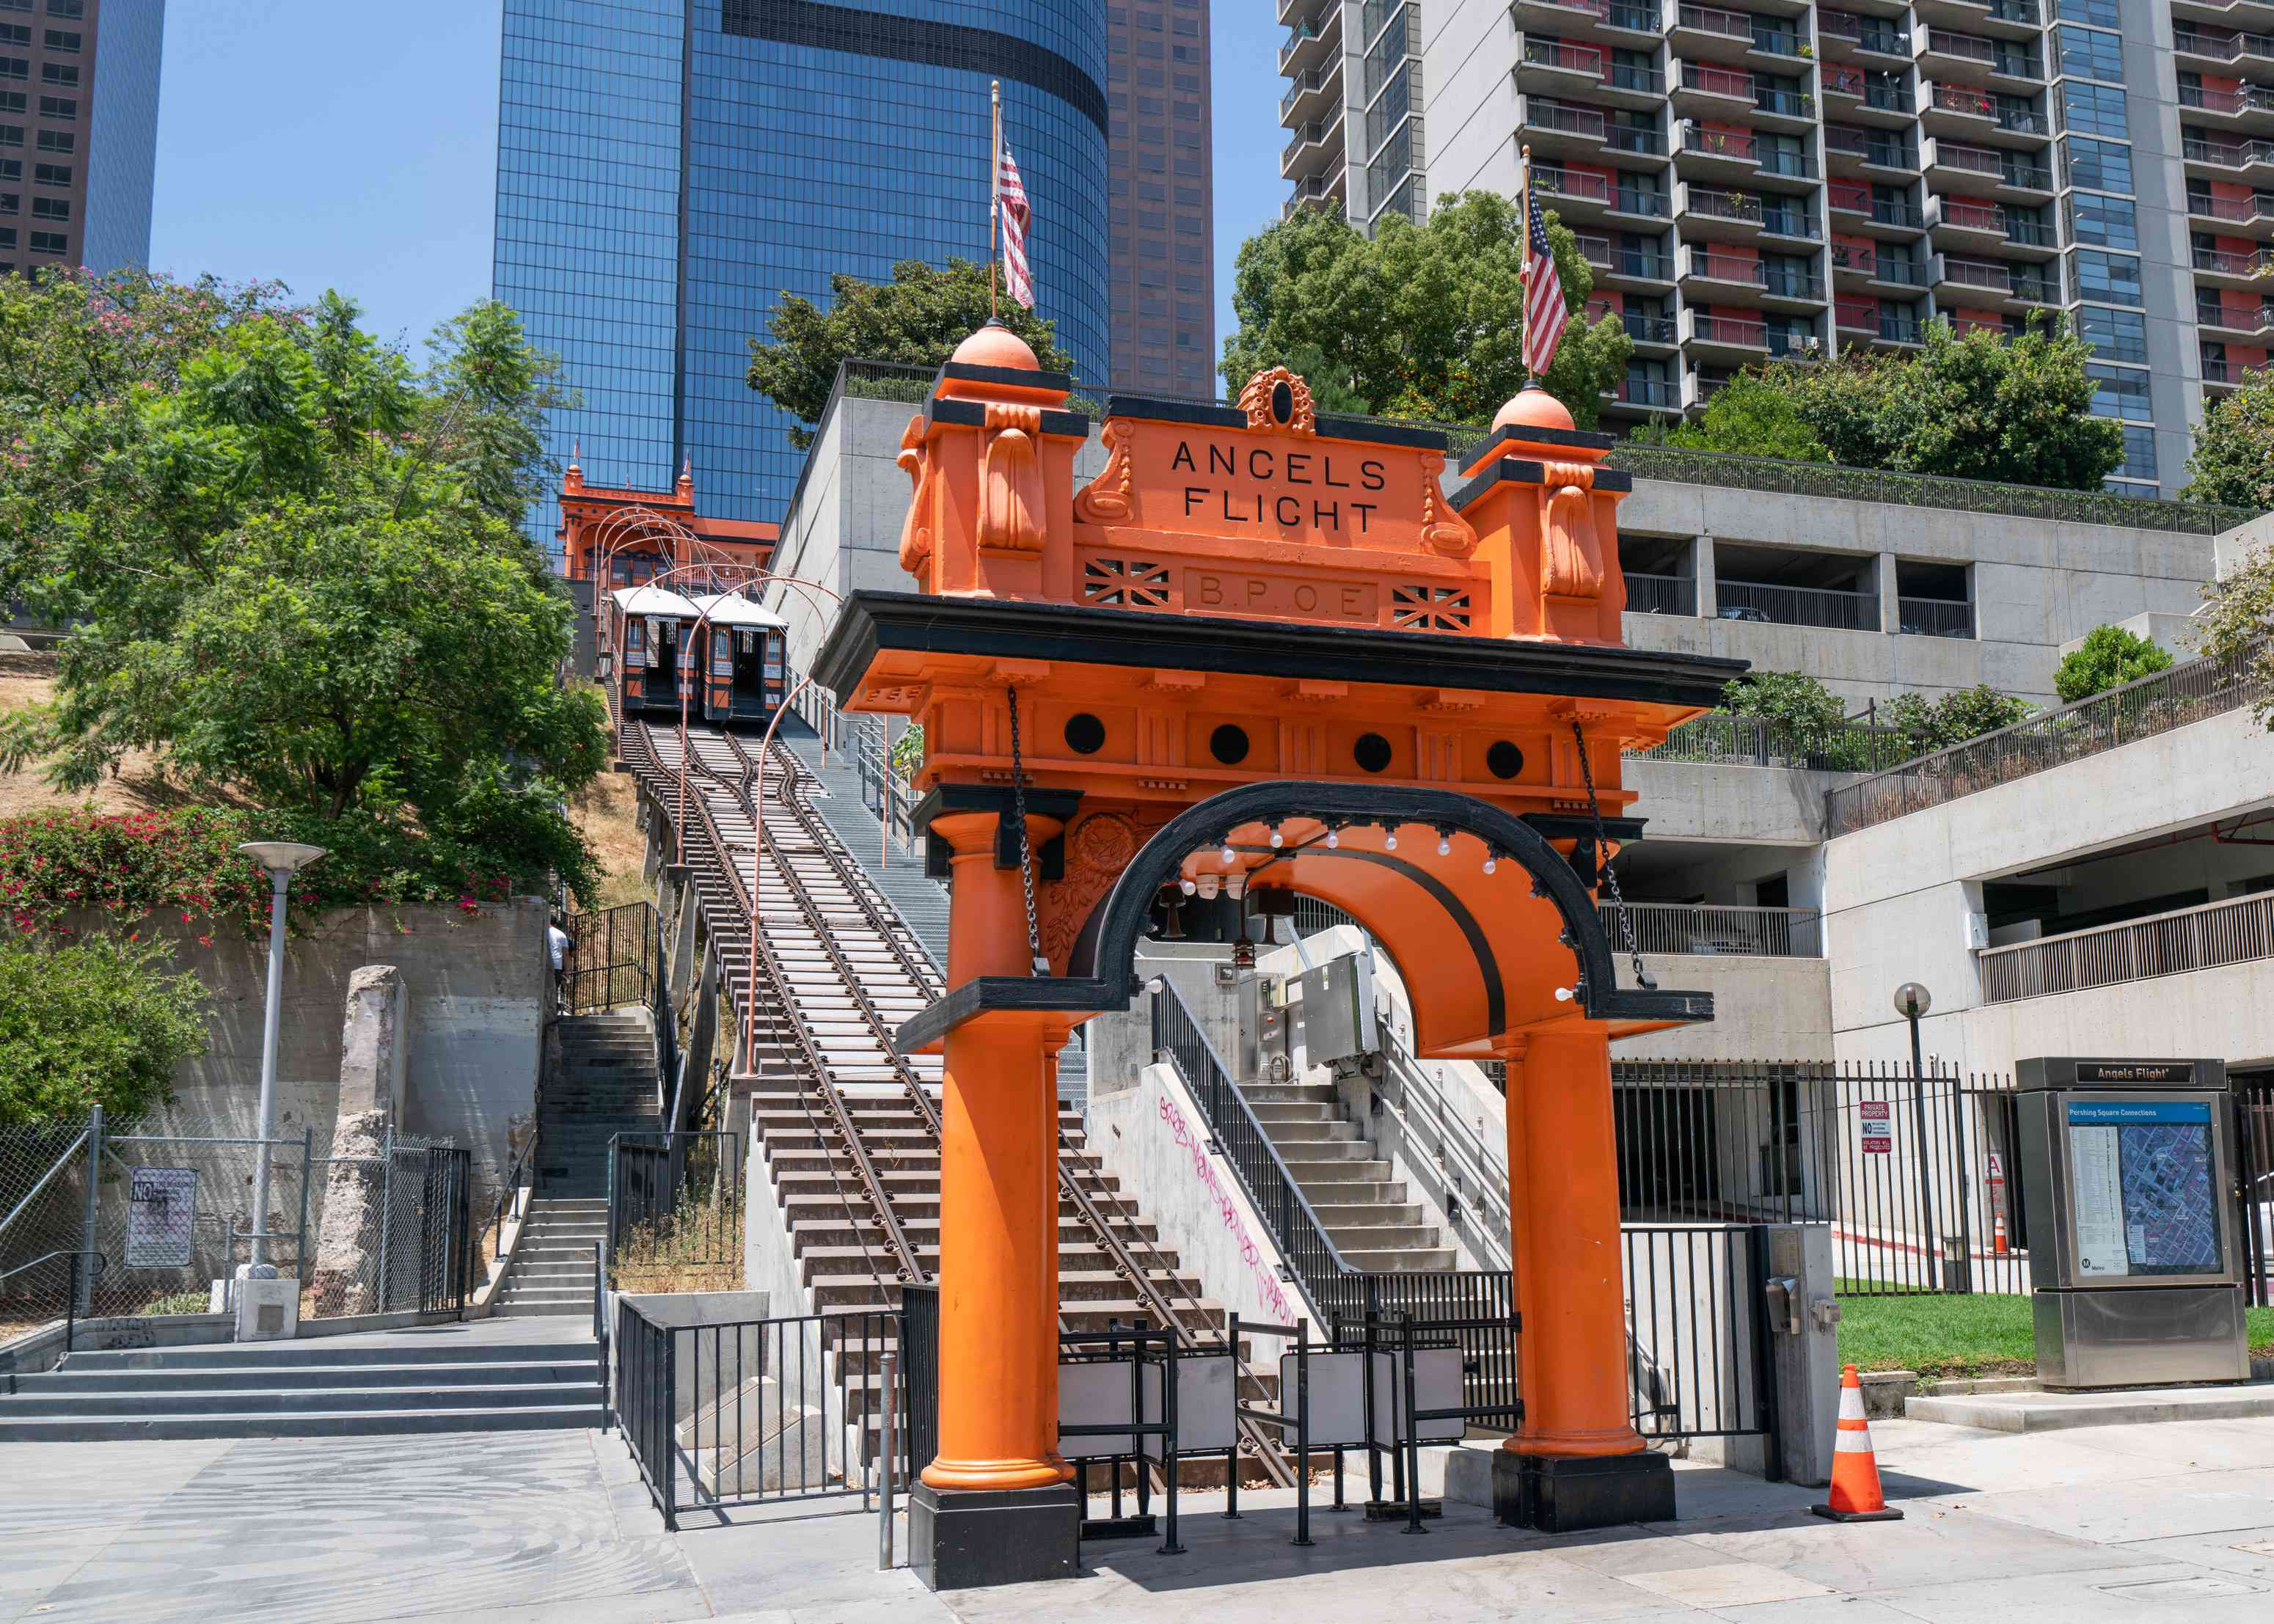 Angels Flight funicular in downtown L.A.